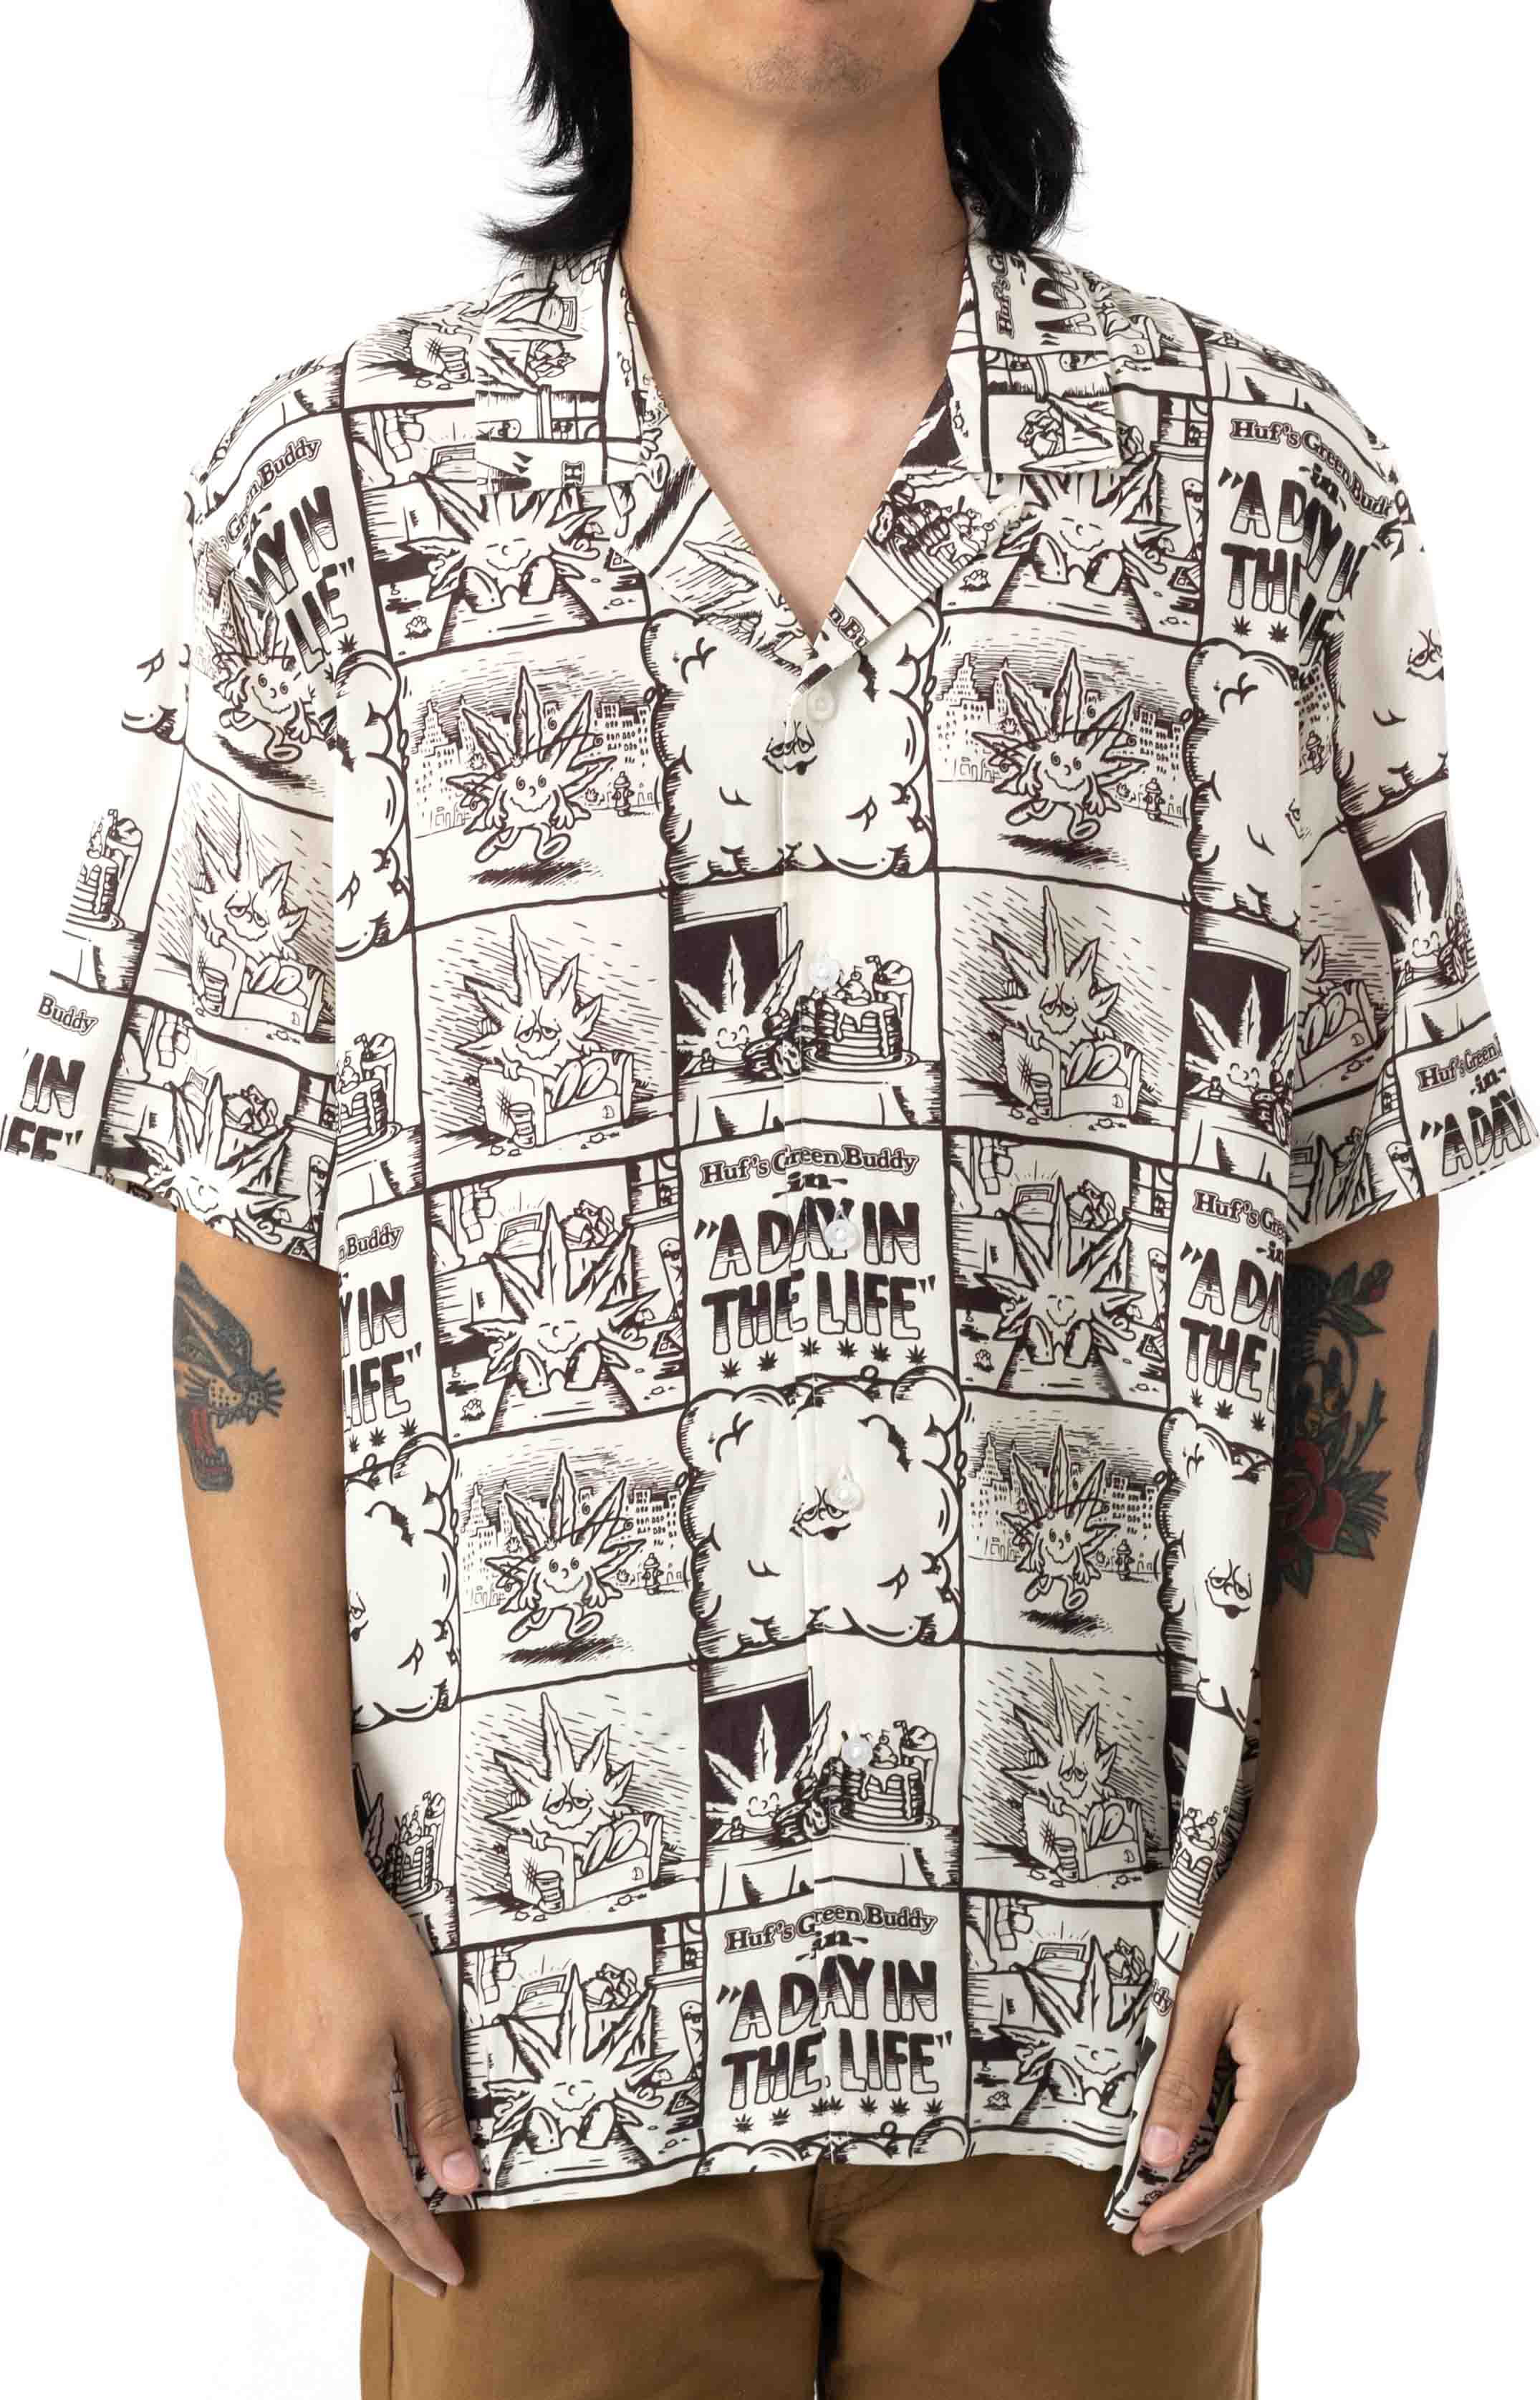 Day In The Life Button-Up Shirt - Natural